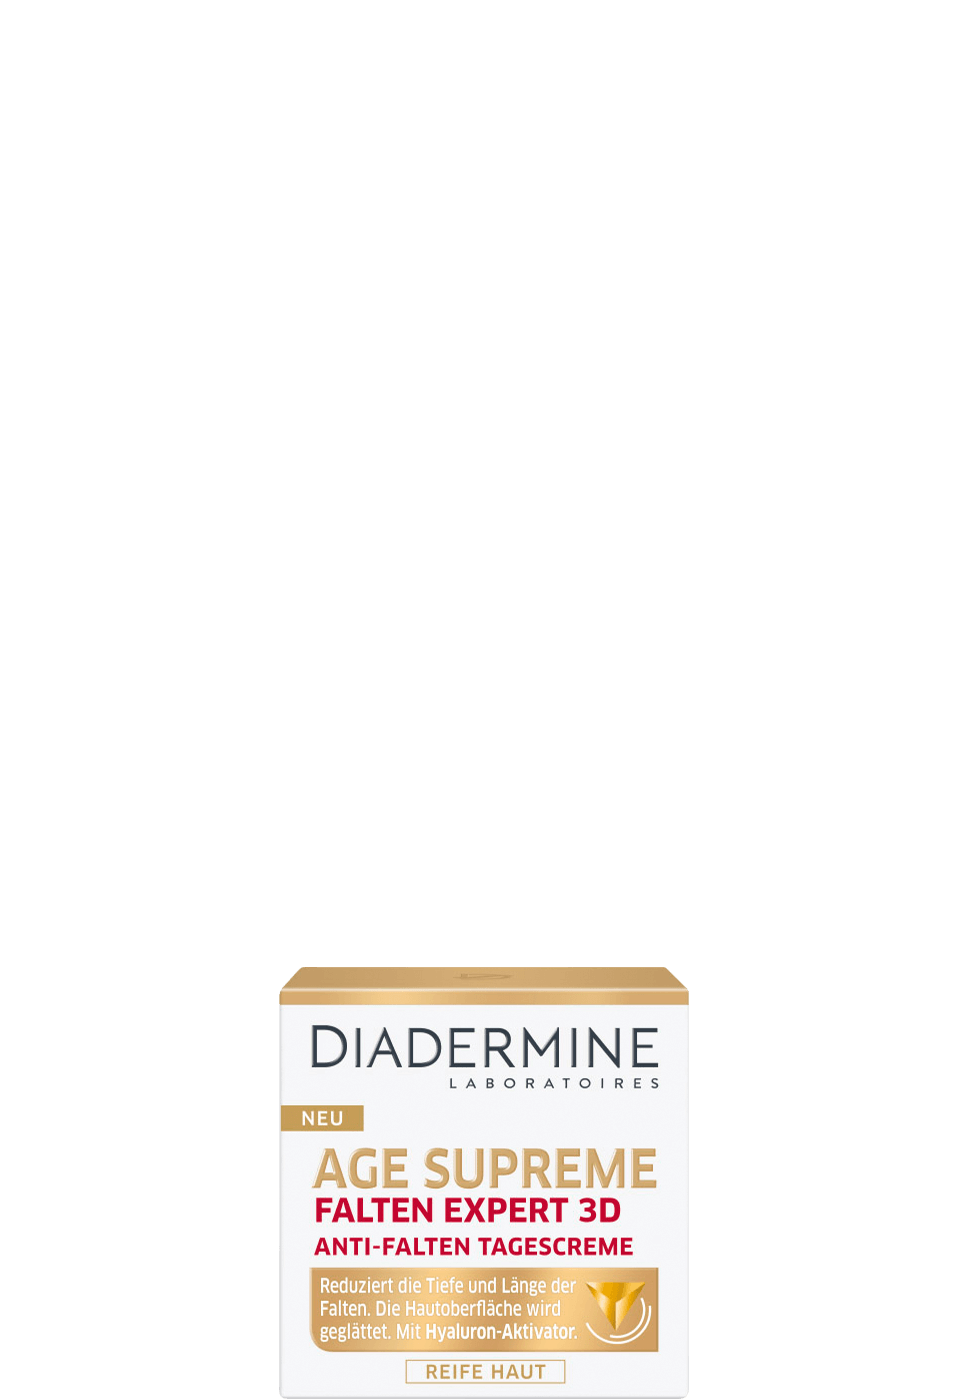 diadermine_at_age_supreme_falten_expert_3d_tagescreme_970x1400